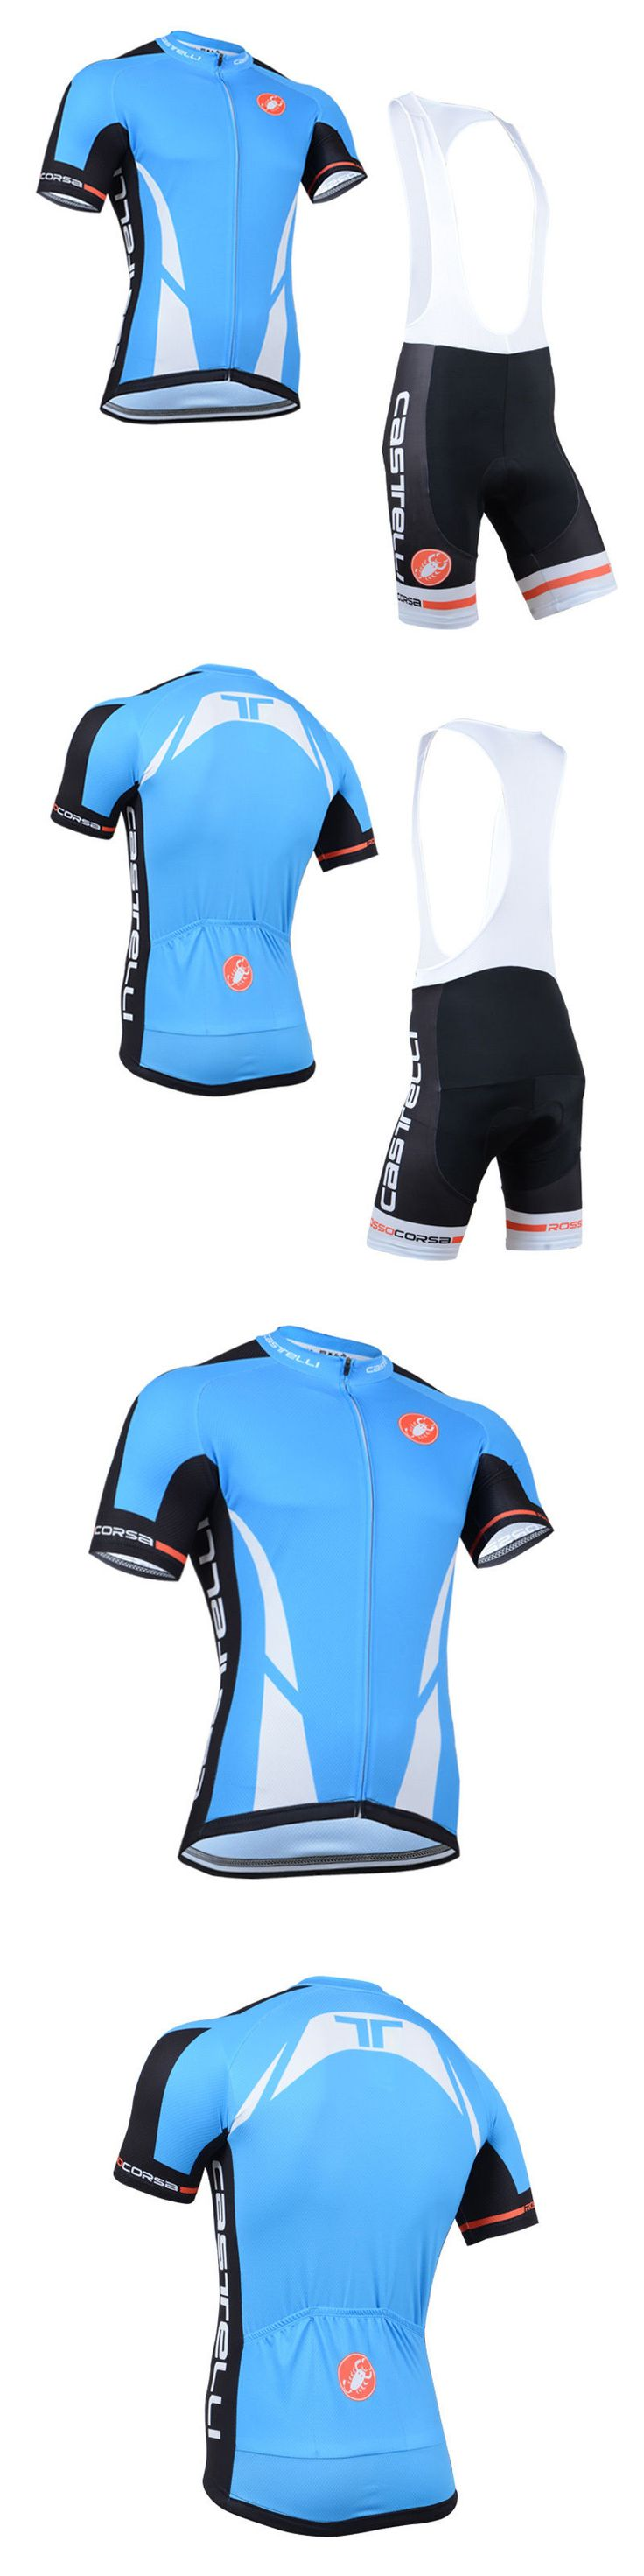 Jersey and Pant Short Sets 177852: New Mens Cycling Jerseys Bib Shorts Suits Outdoor Sports Bike Mtb Clothing Wear -> BUY IT NOW ONLY: $33.9 on eBay!